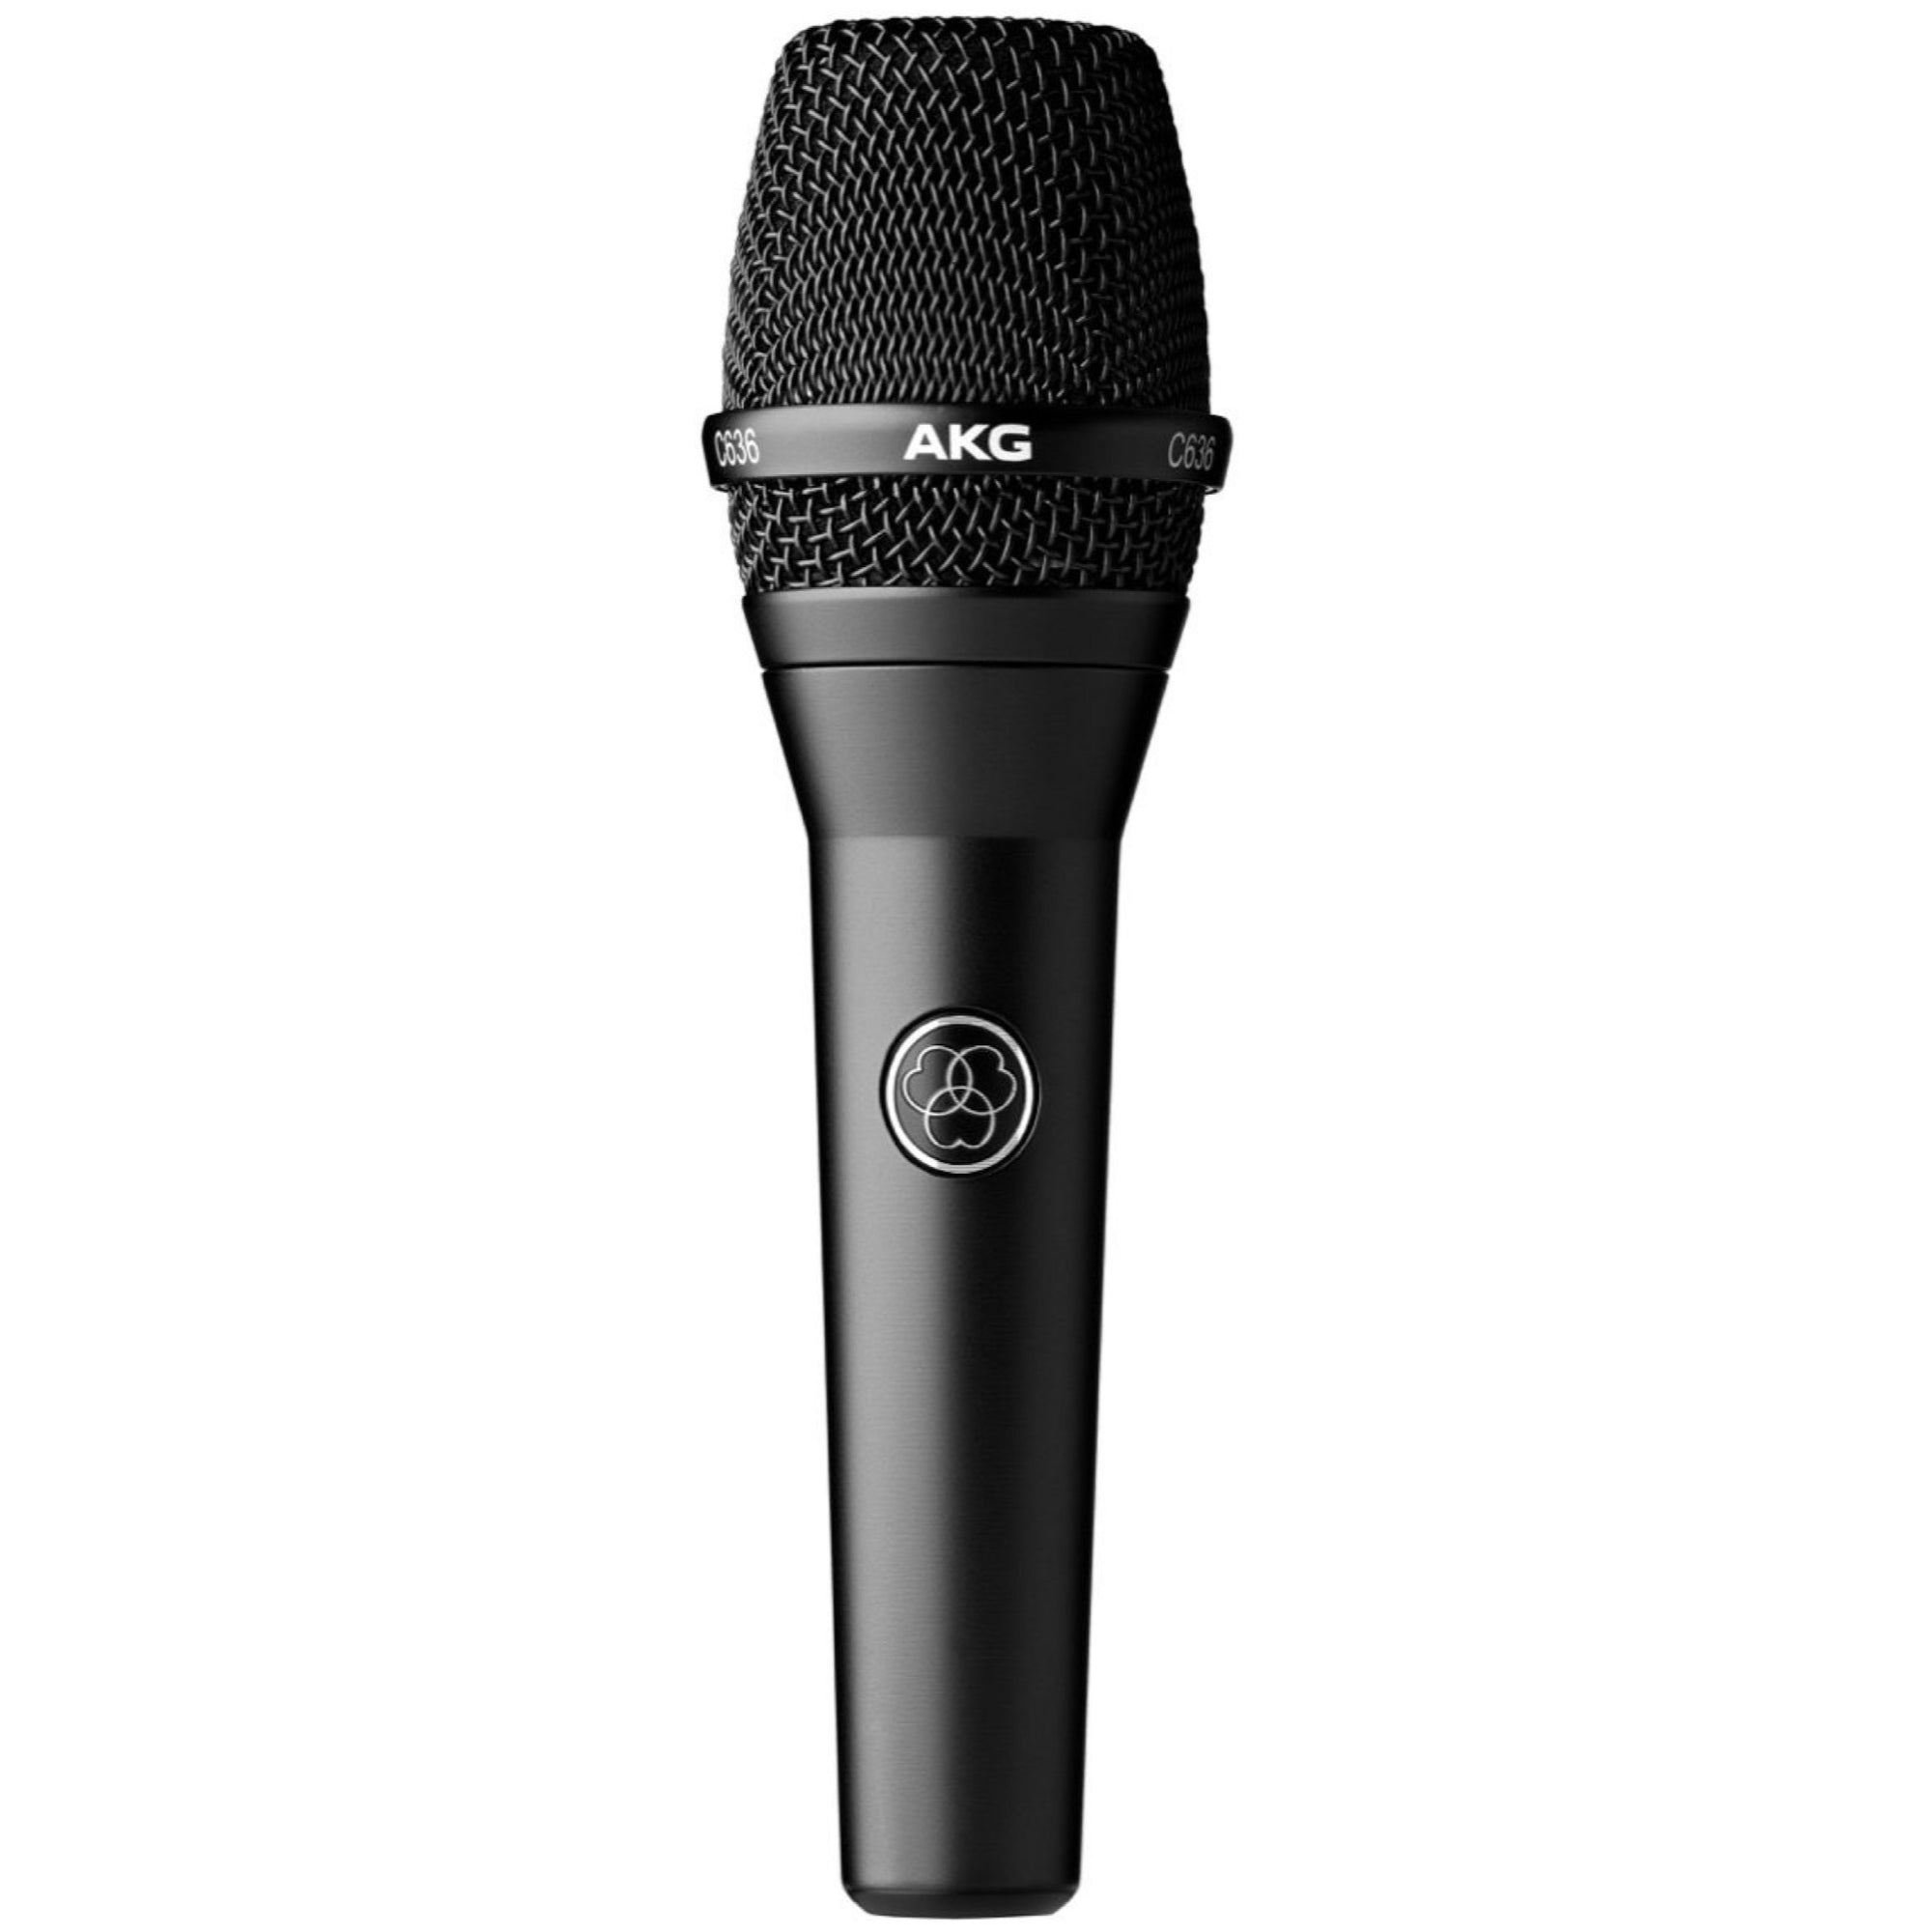 AKG C636 Handheld Condenser Vocal Microphone, Black